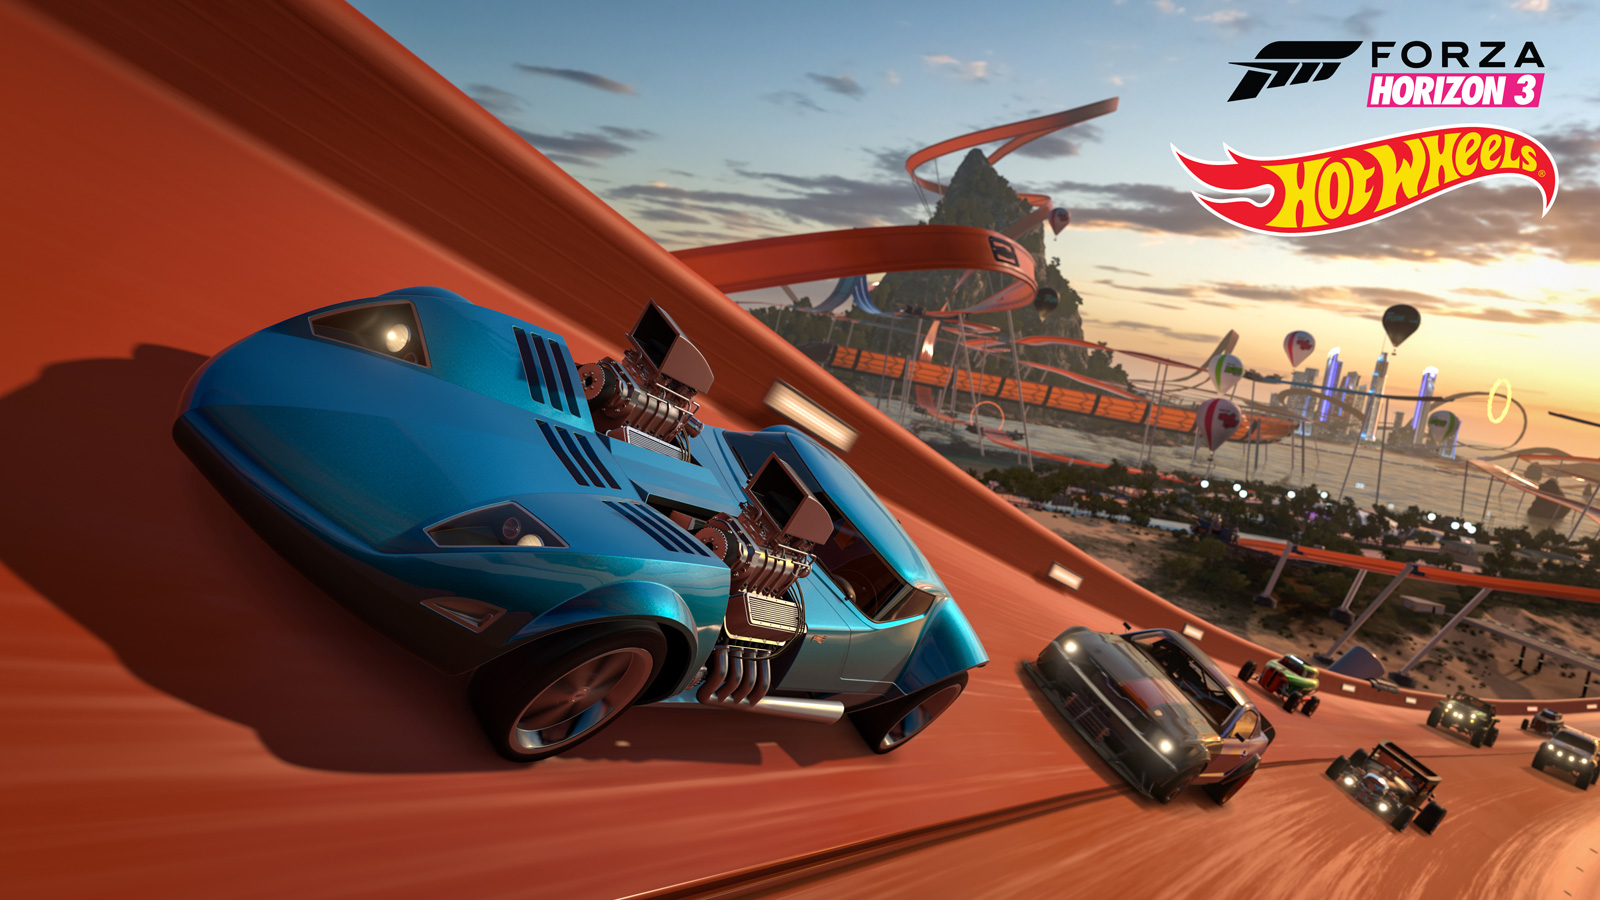 Race Hot Wheels In The Latest Forza Horizon 3 Expansion